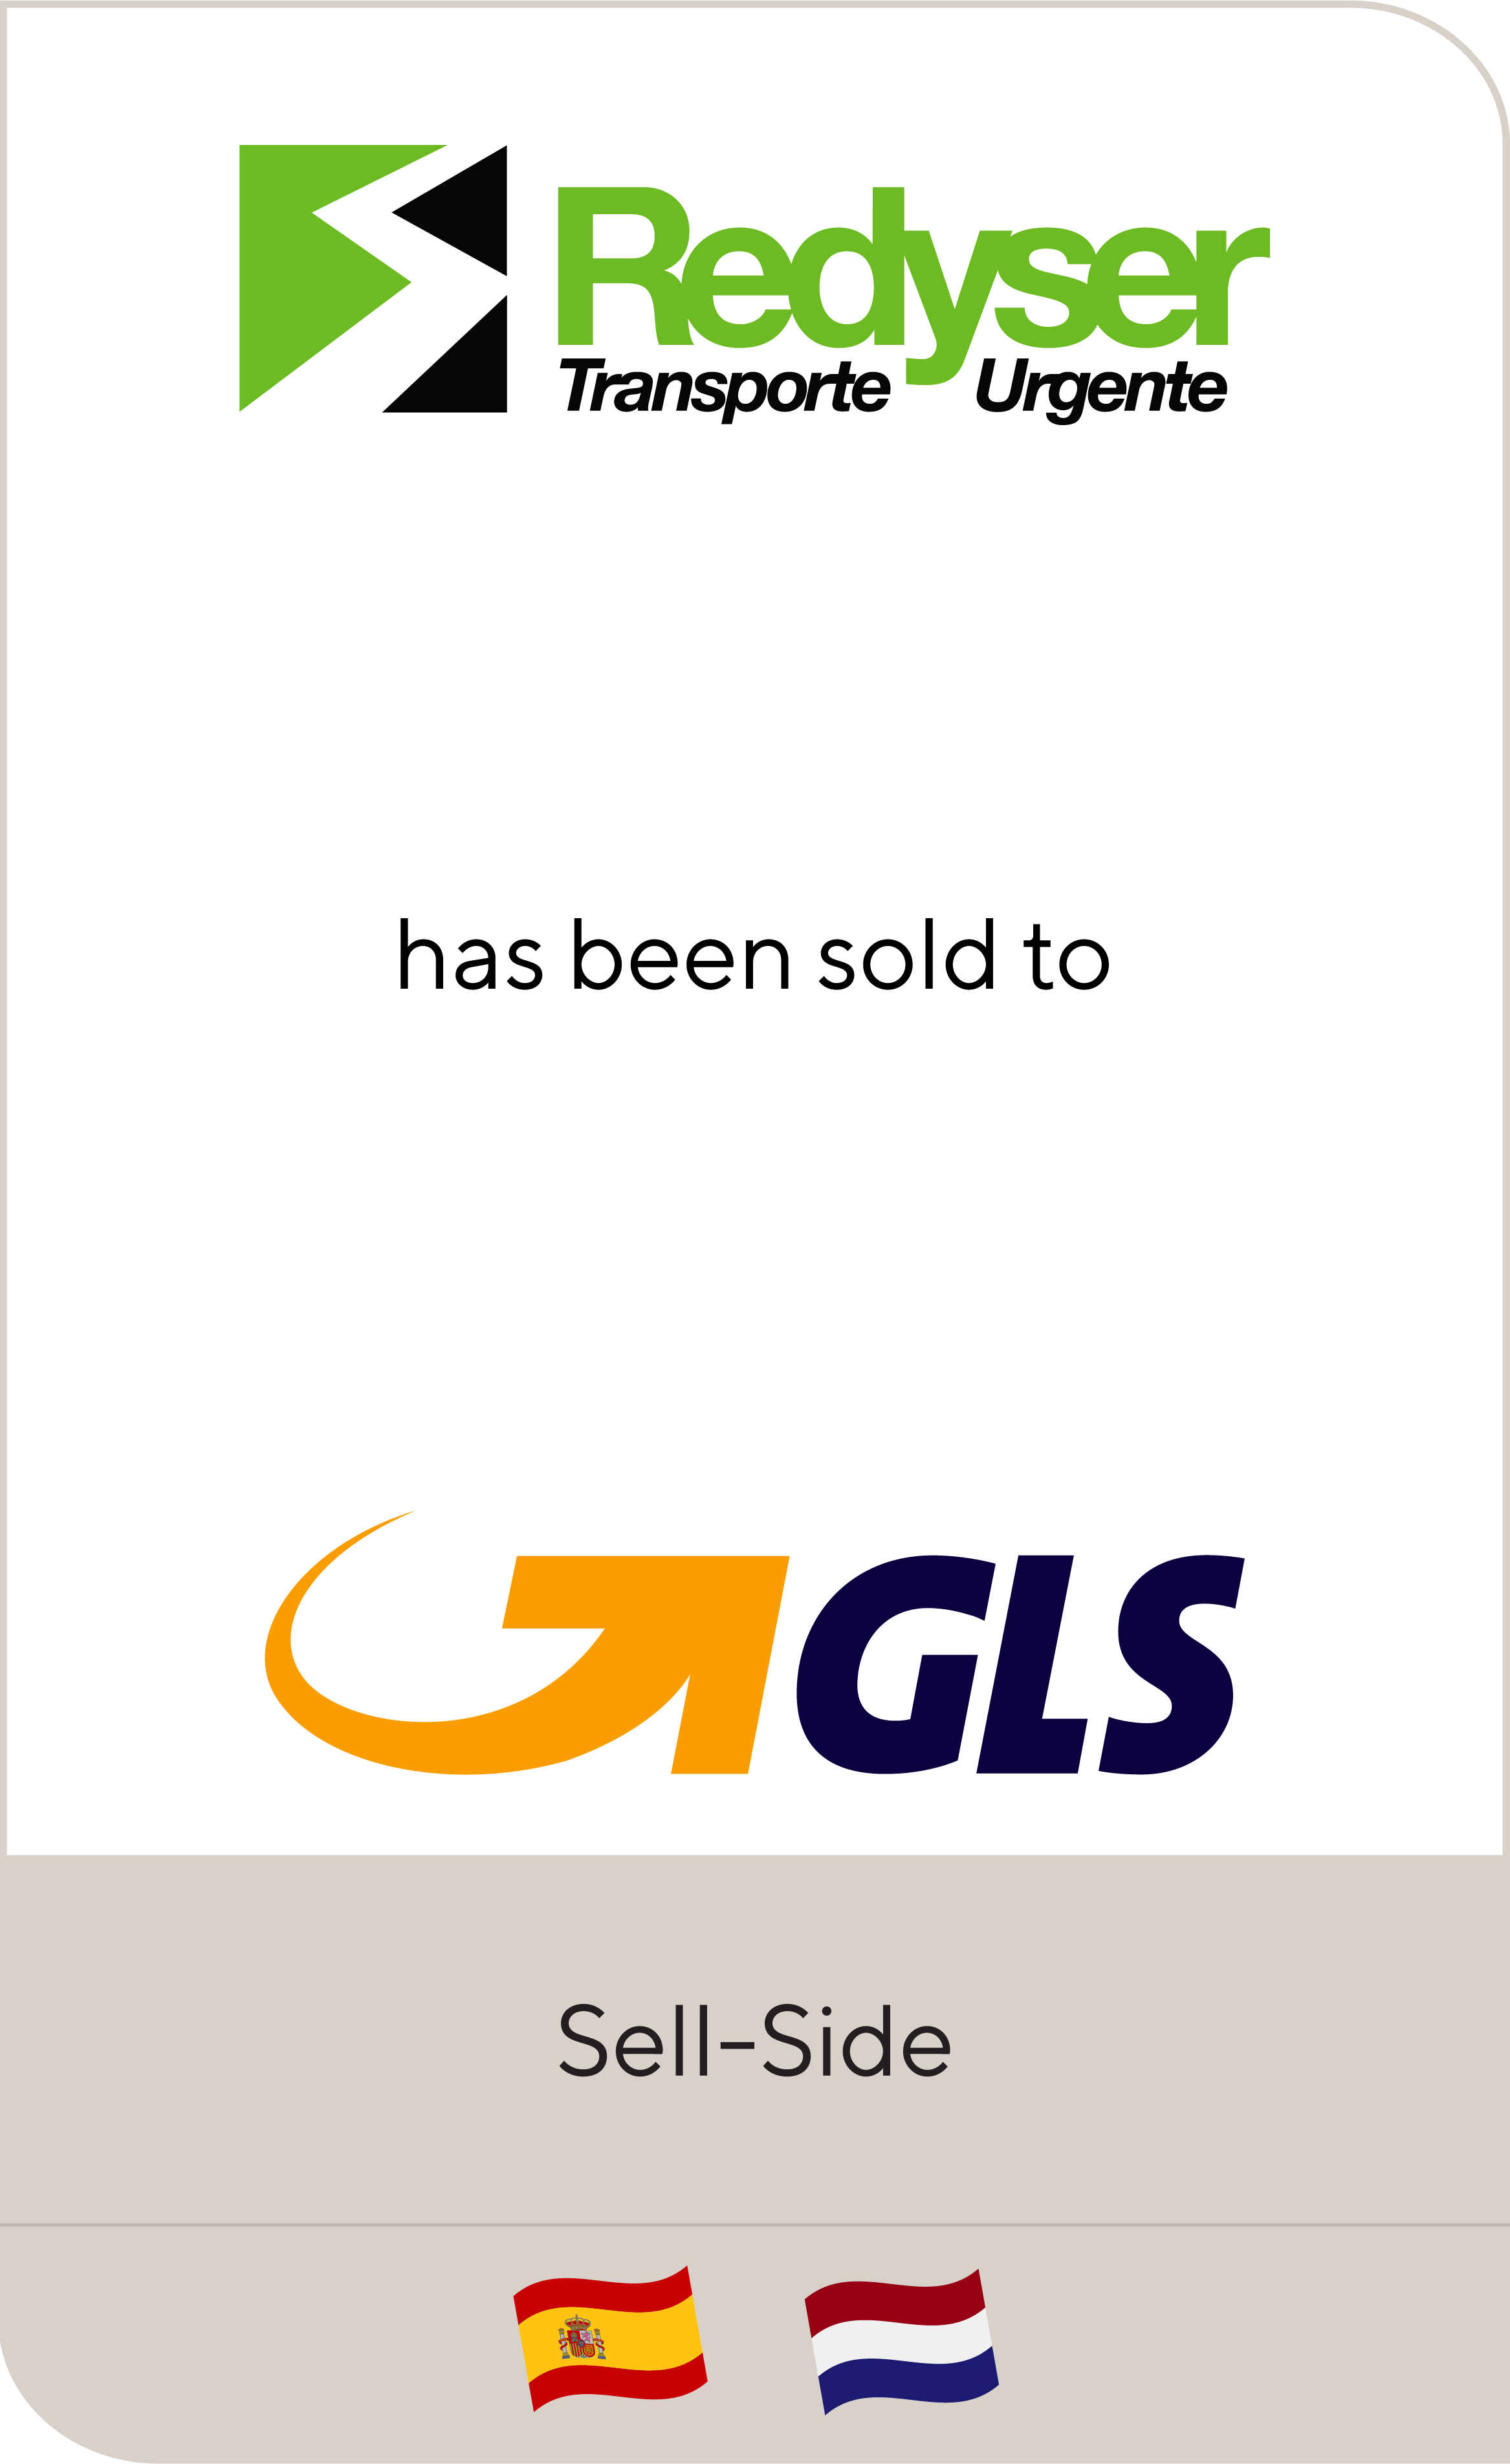 Redyser Transporte has been sold to GLS